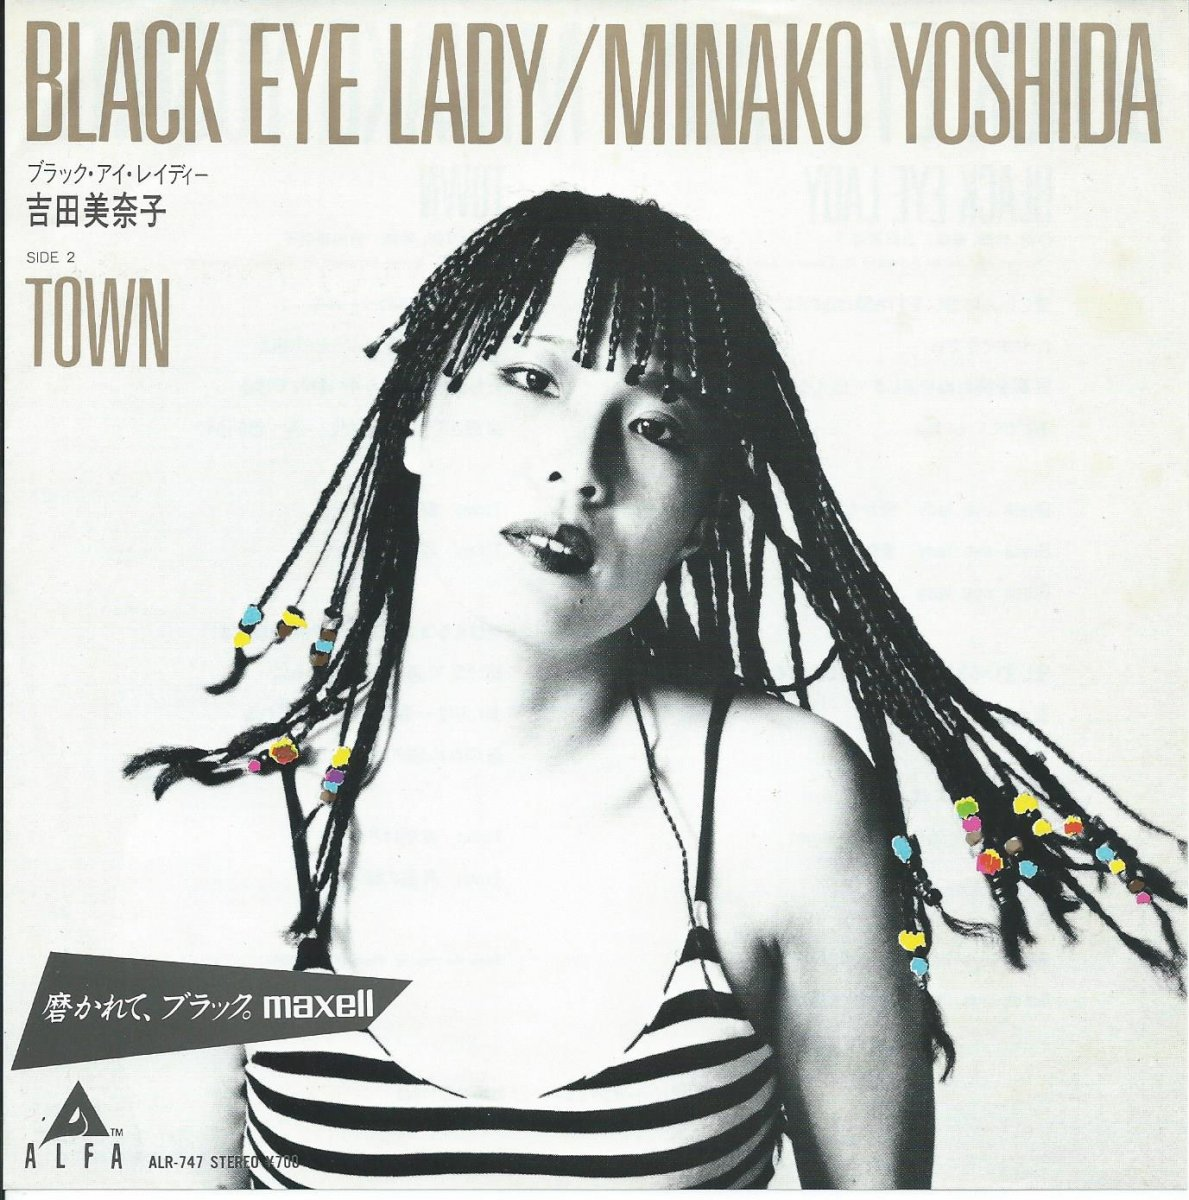 吉田美奈子 MINAKO YOSHIDA / BLACK EYE LADY / TOWN (7